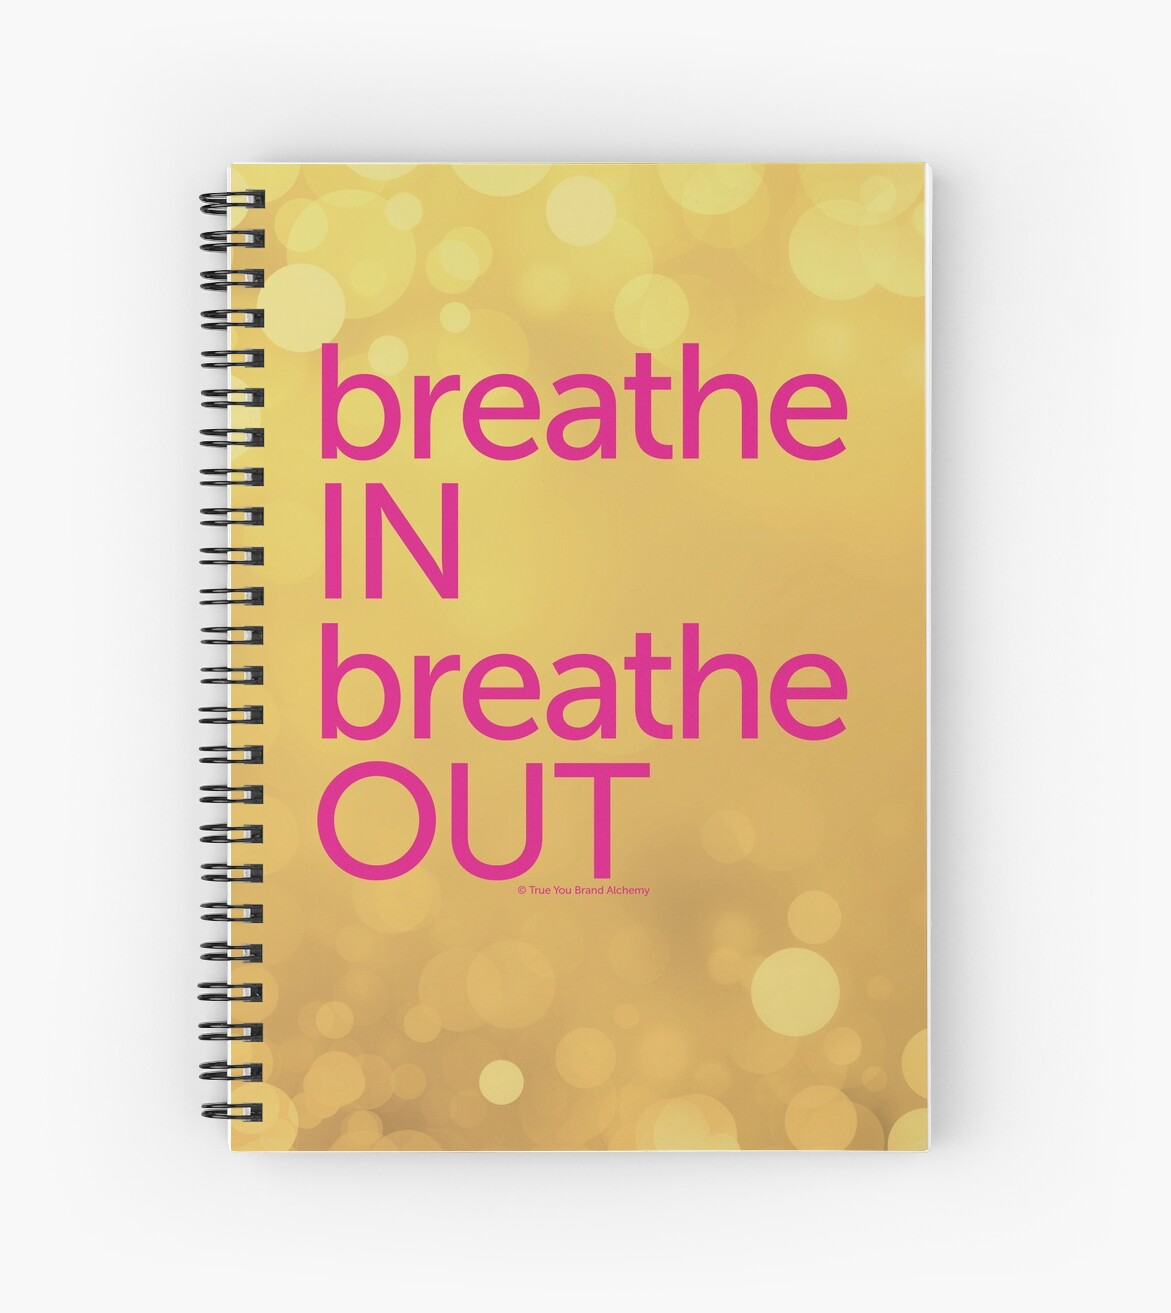 Breathe In, Breathe Out Golden Journal by ElaineCallahan